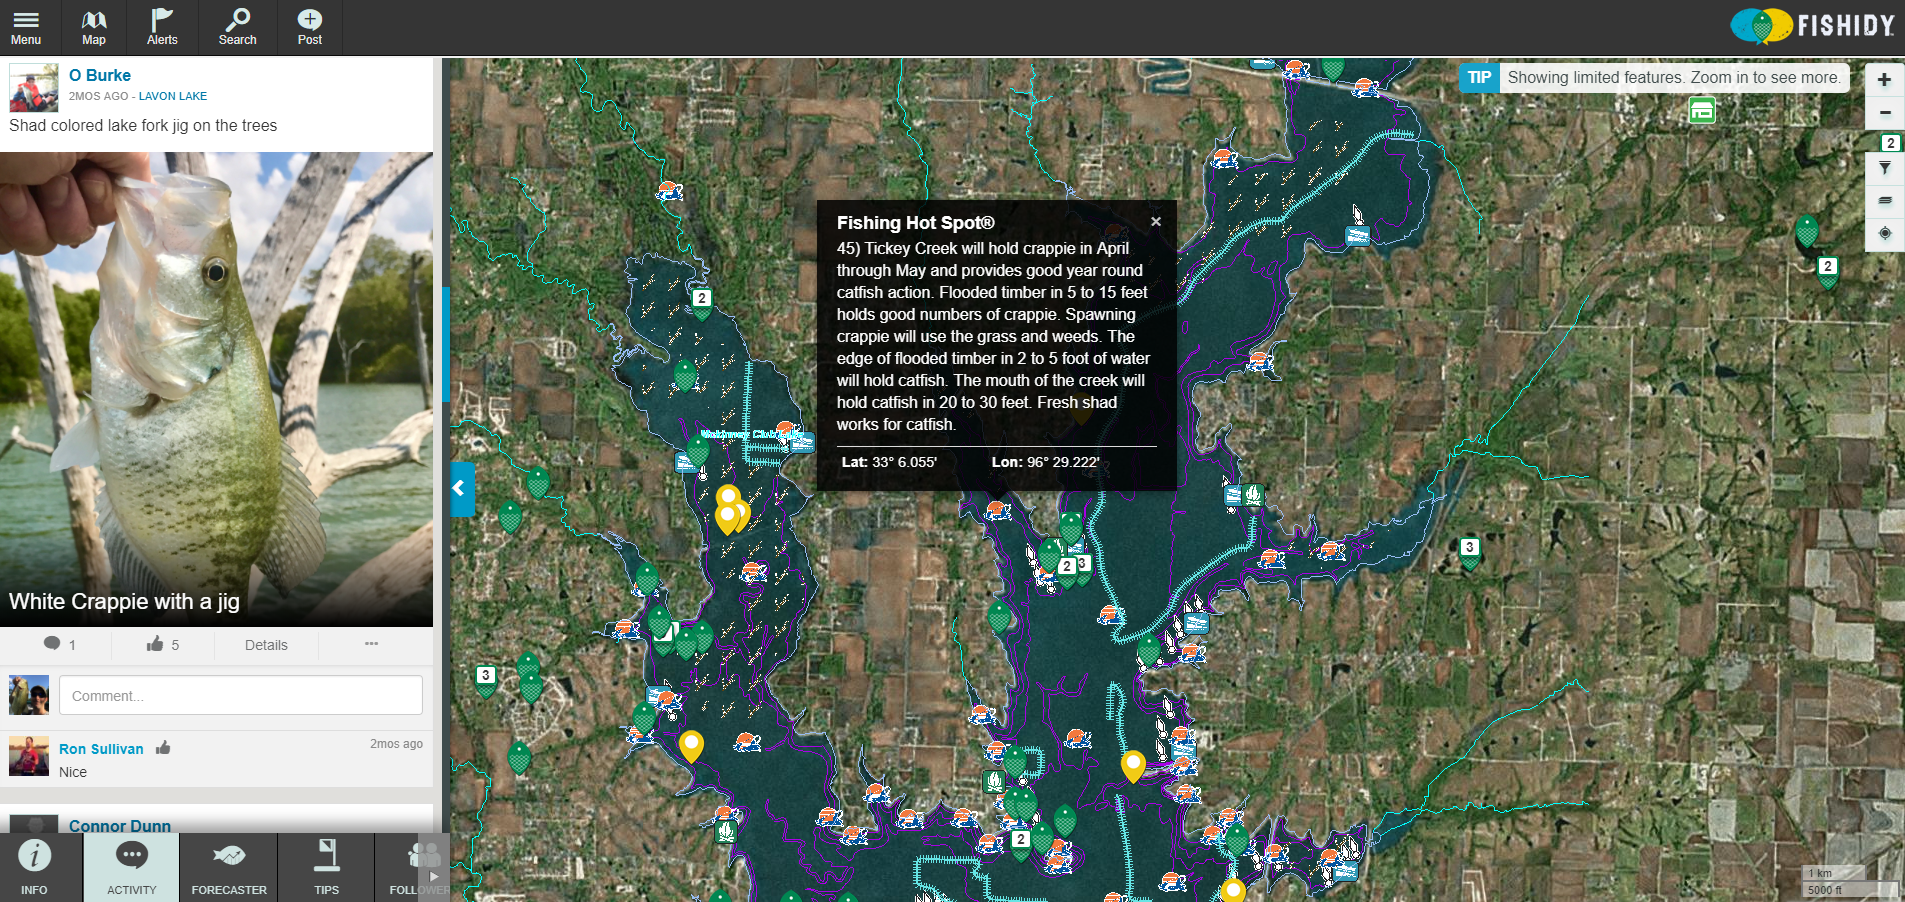 lake lavon hunting map Find Crappie Fishing Hot Spots On Lavon Lake Fishing Tips lake lavon hunting map